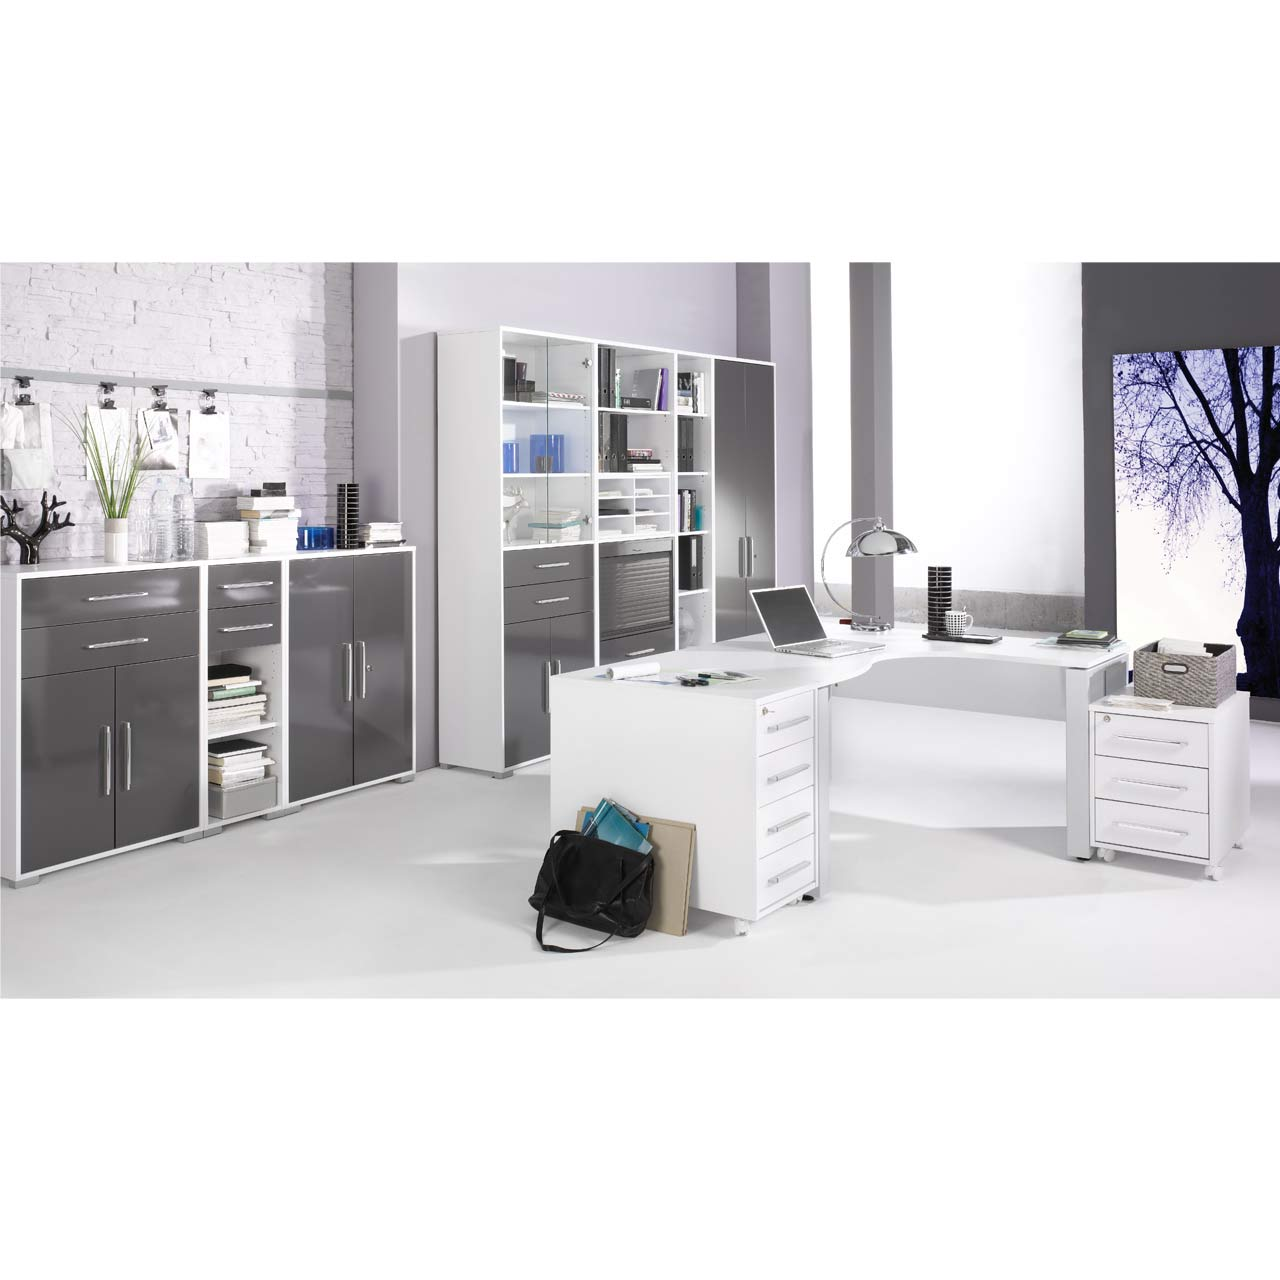 maja b roprogramm system 1206 icy wei grau hochglanzm bel g nstig preiswert hochwertig. Black Bedroom Furniture Sets. Home Design Ideas